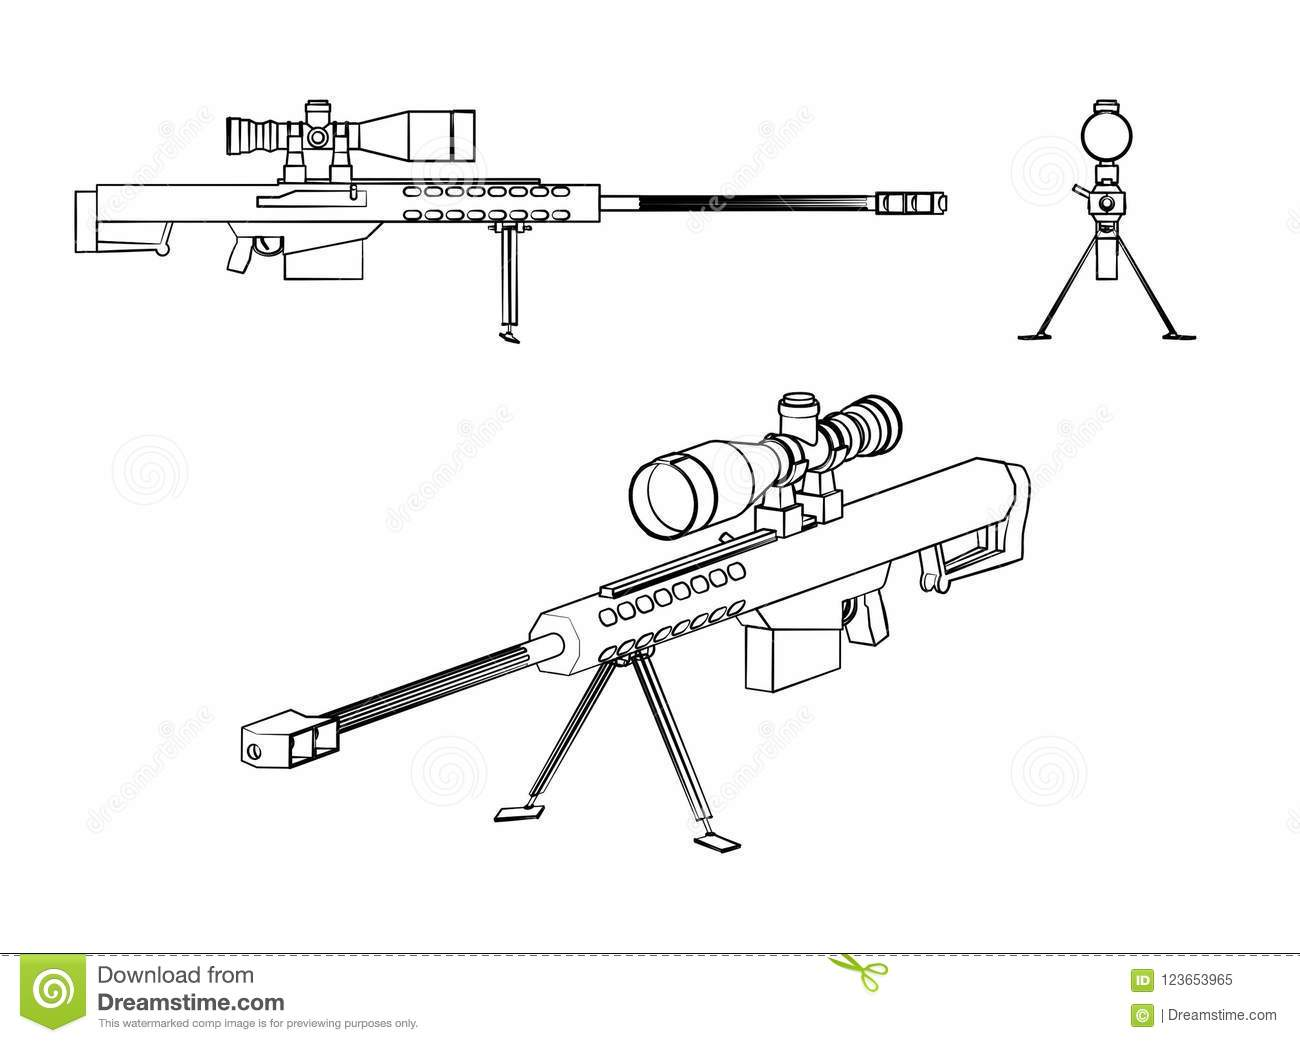 To it what is be a sniper like The best